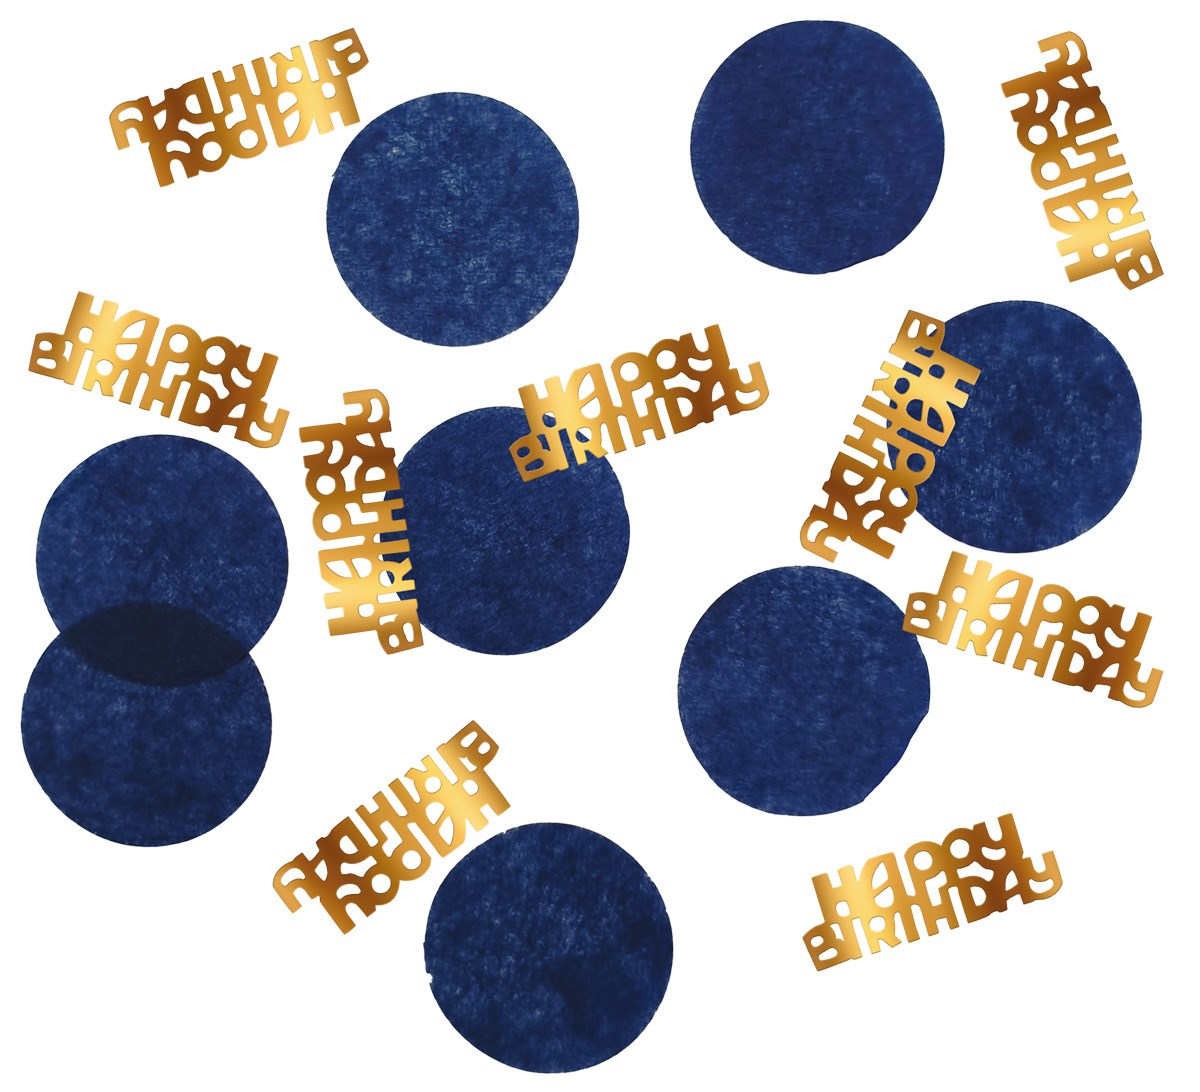 Tabledeco/confetti Happy Birthday Elegant True Blue 25gr 1